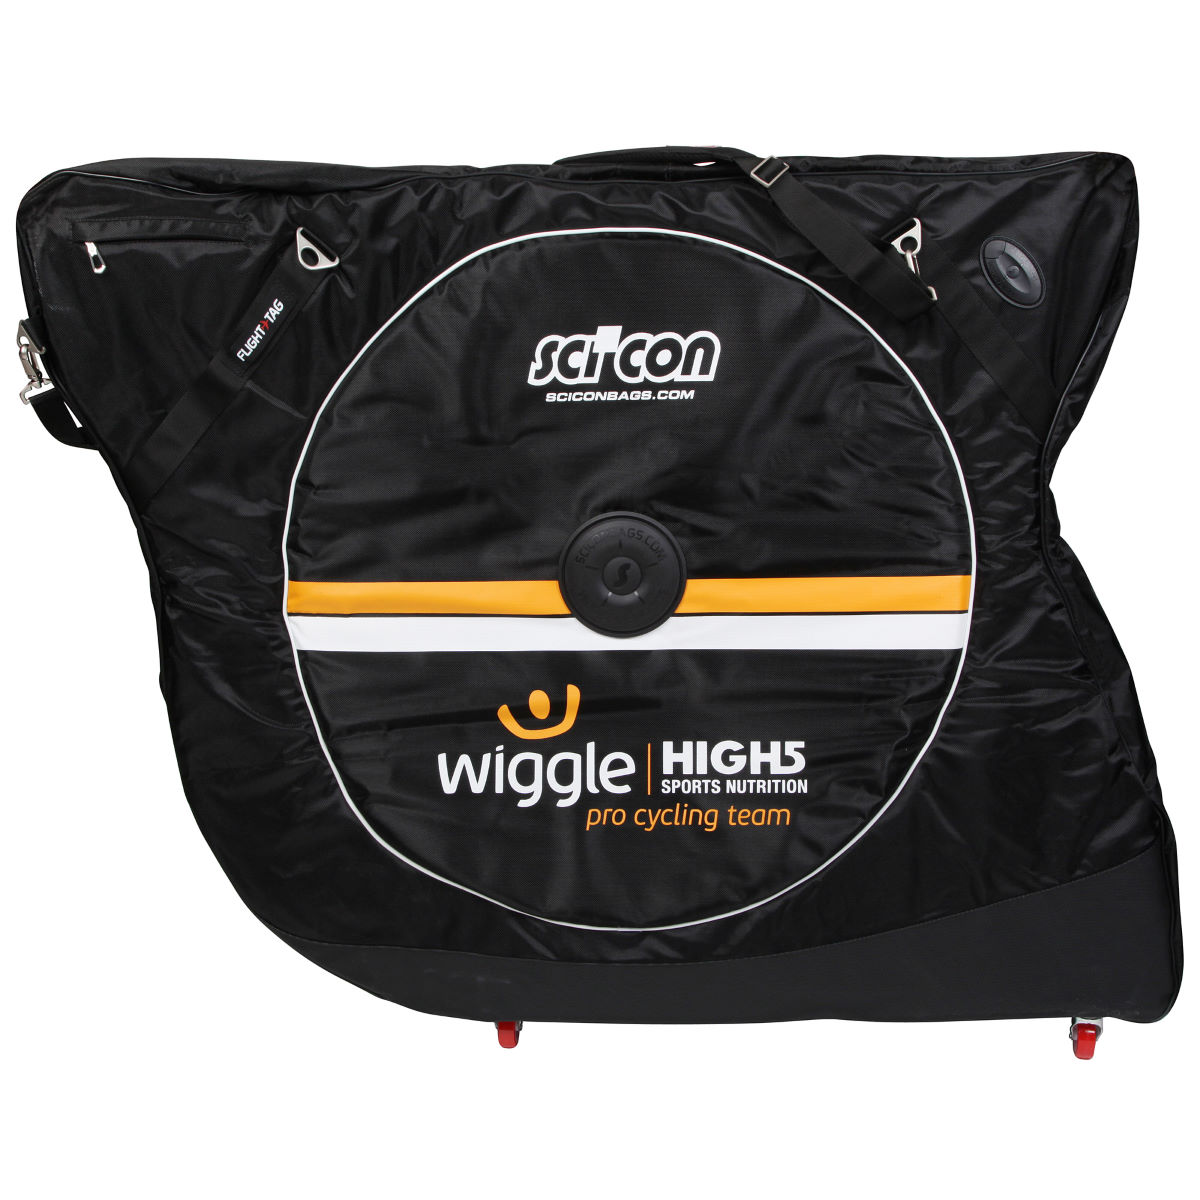 Scicon Aerocomfort 2.0 TSA Bike Bag (Wiggle High5 Team)   Soft Bike Bags